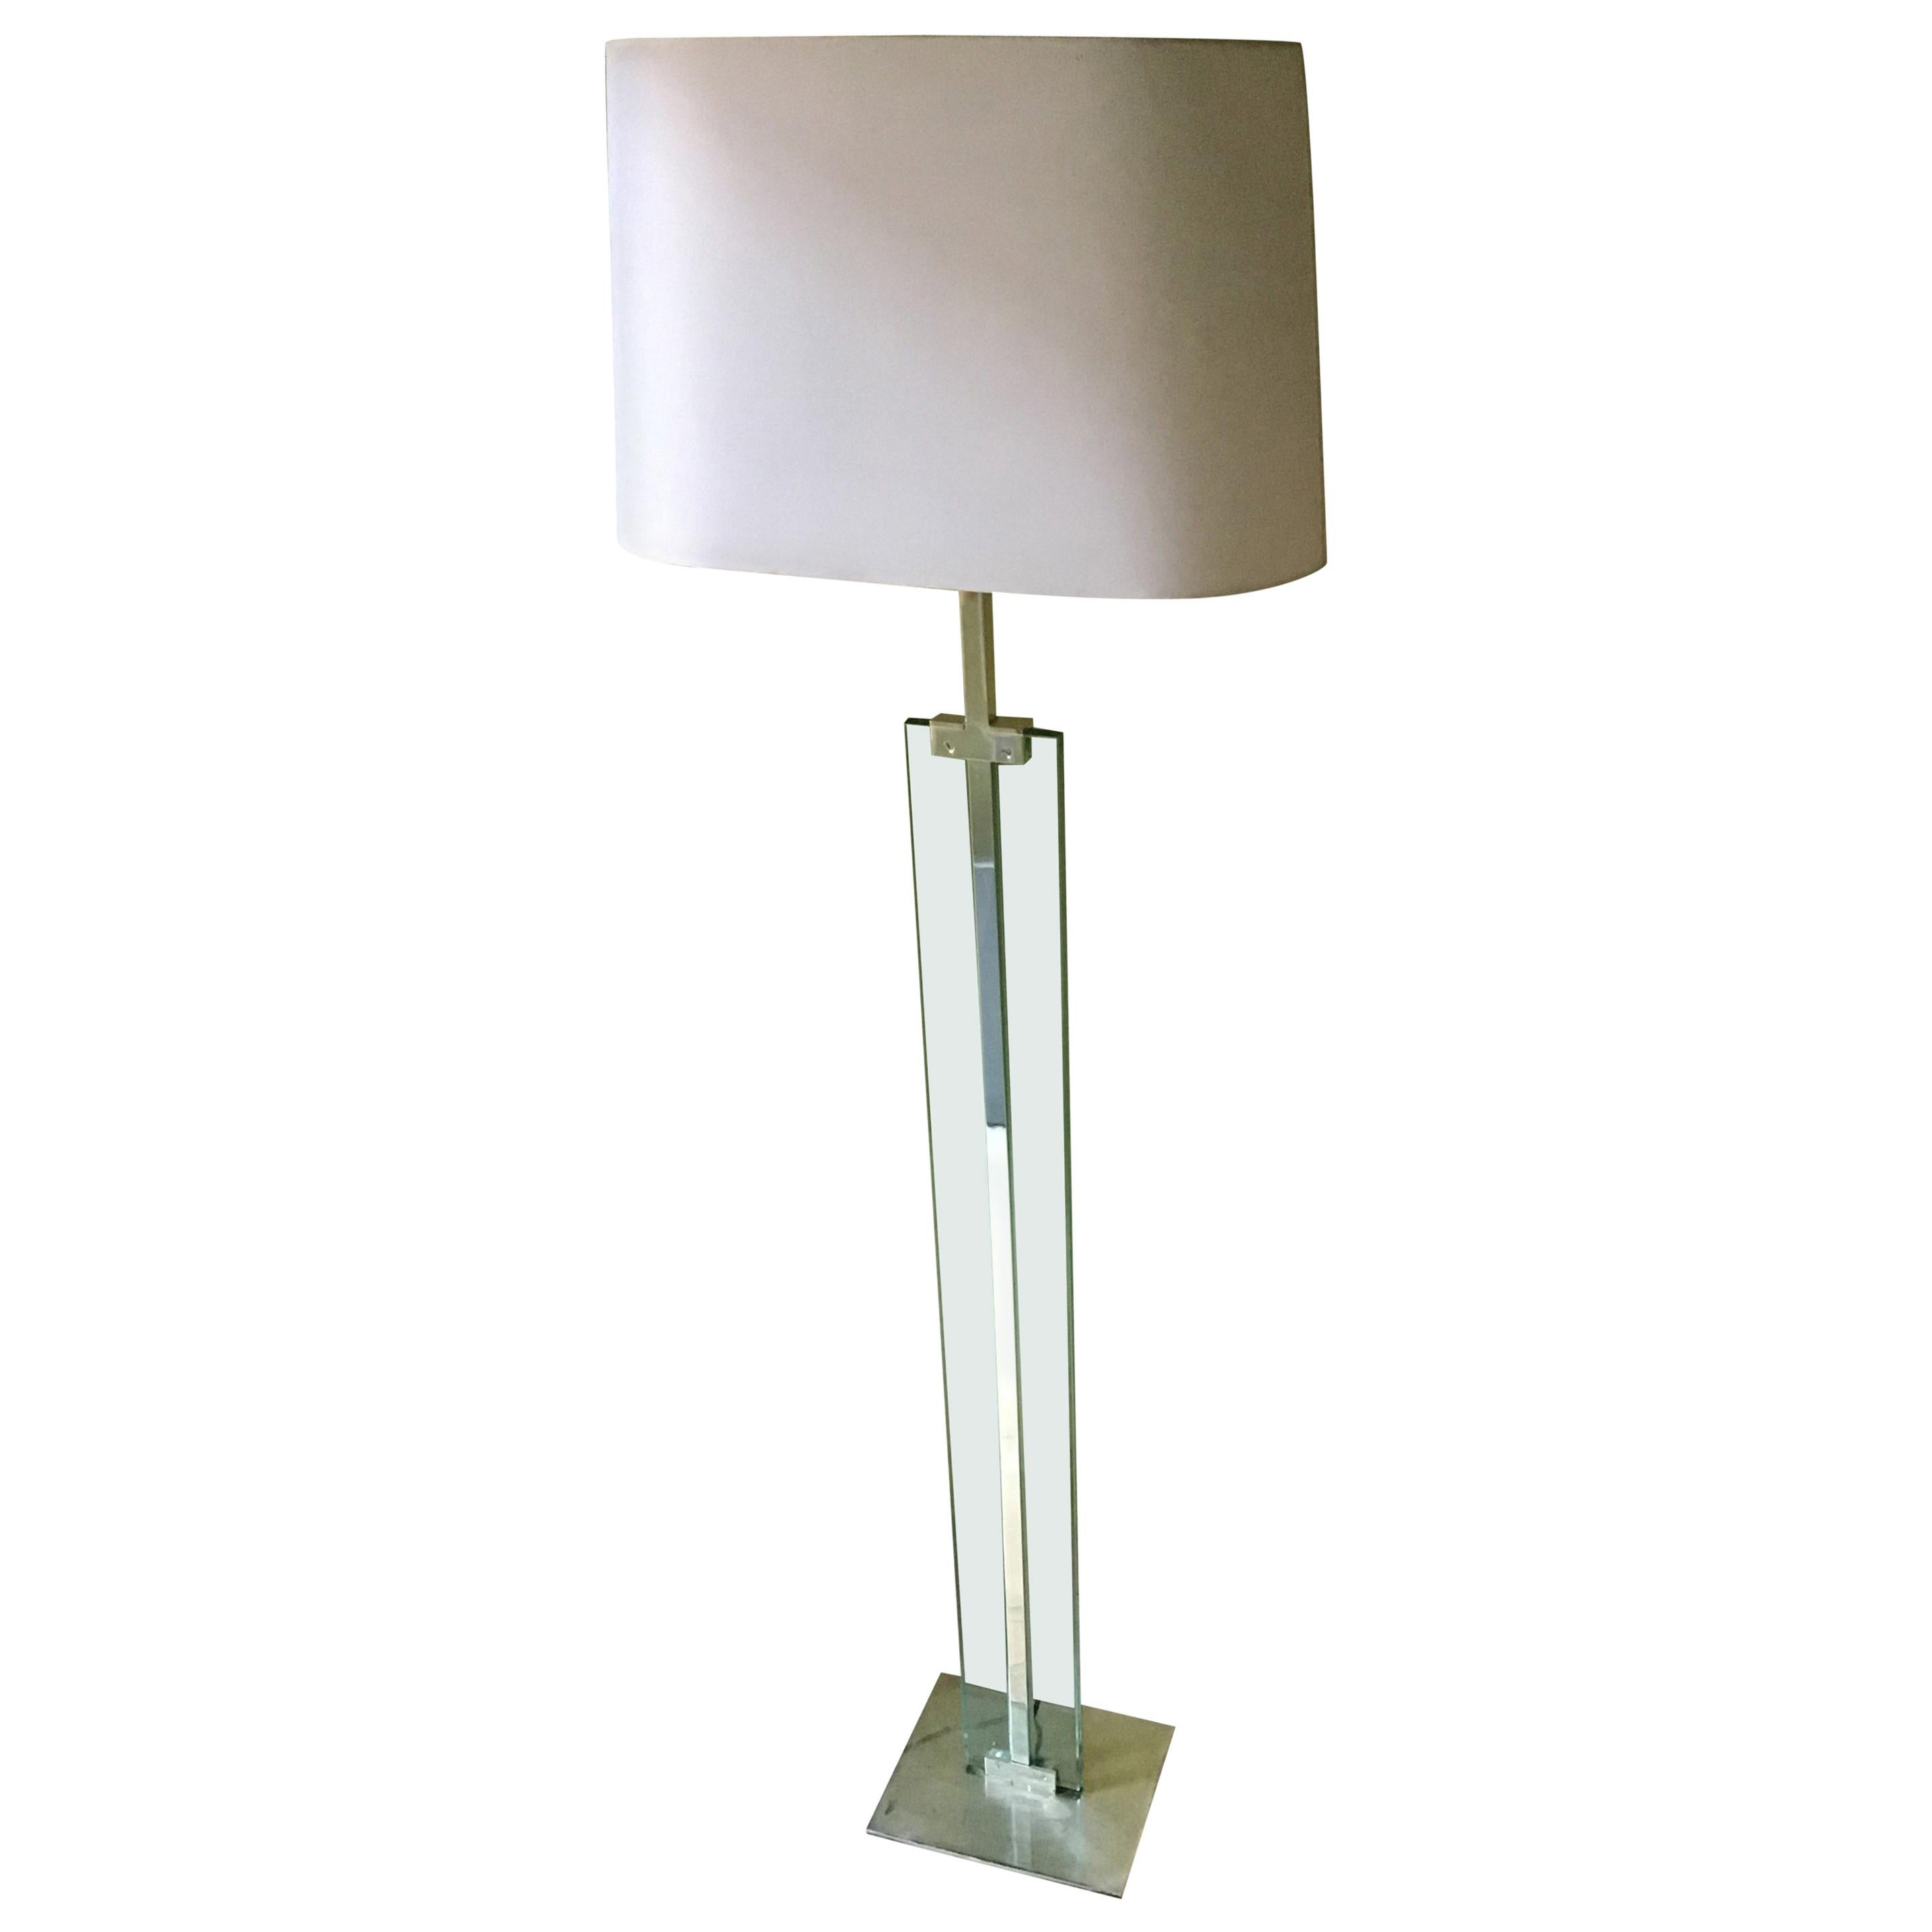 Fontana Arte Floor Lamp 1960 Crome Brass Glass Fabric Lampshade, Italy